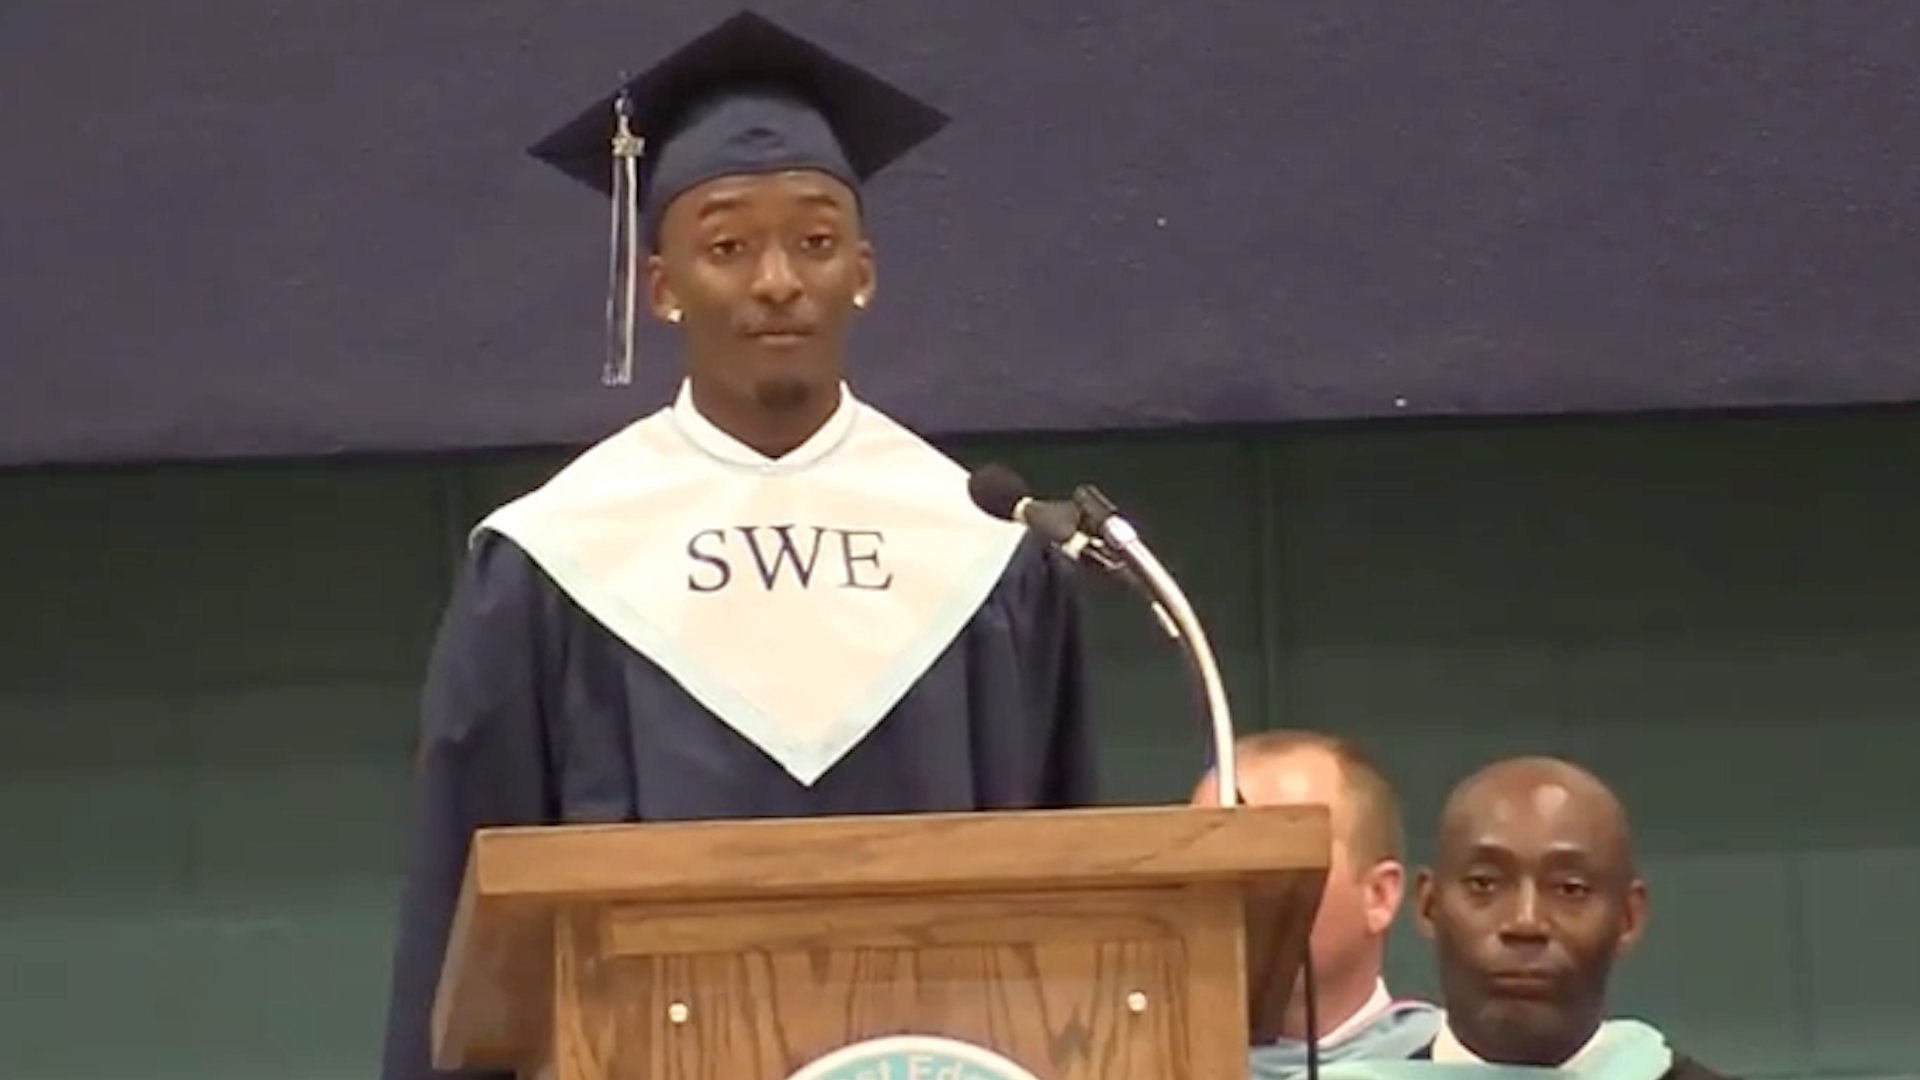 Graduating senior refused to read speech written by administrators, so they withheld his diploma